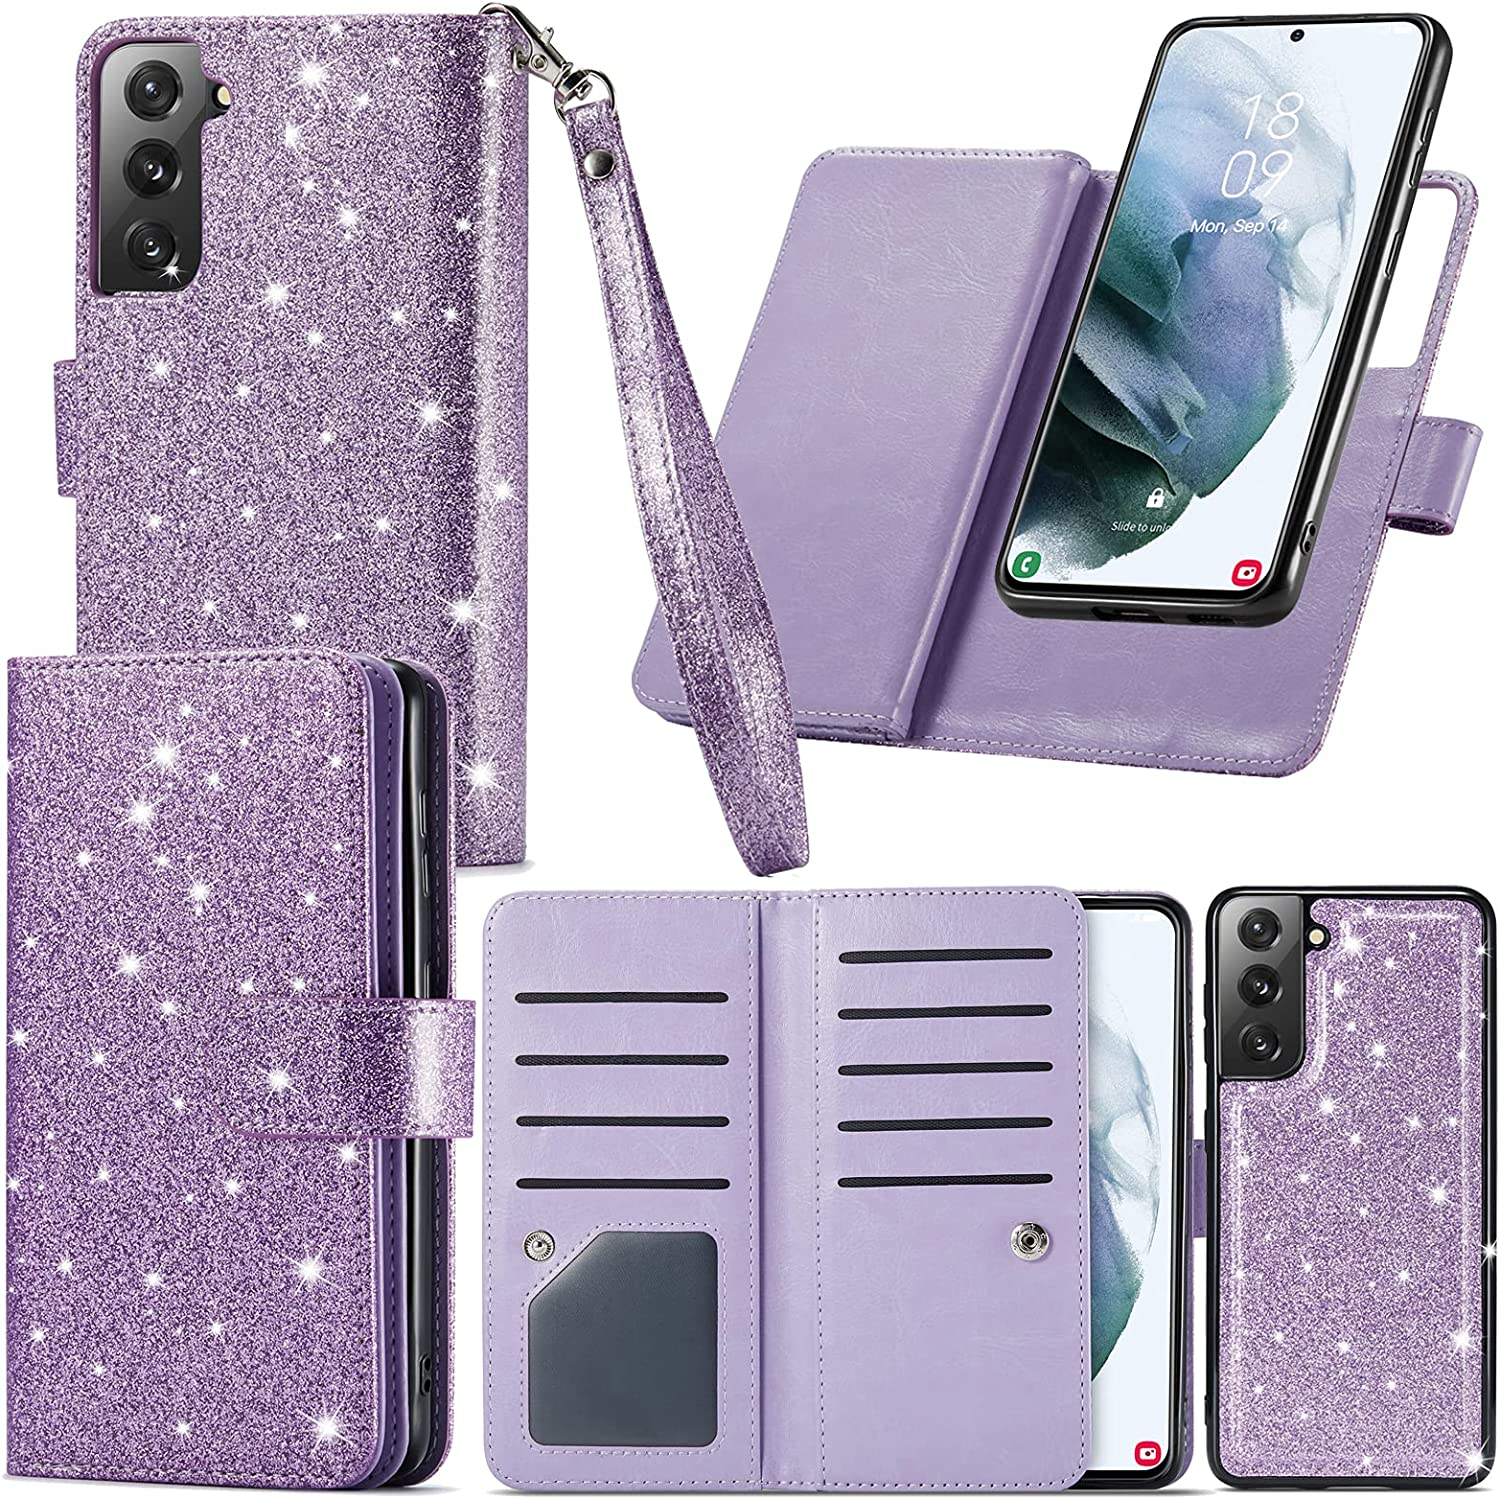 Varikke Samsung Galaxy S21 Case Wallet, Galaxy S21 Case with 9 Card Holder & Powerful Magnetic Detachable Cover & Kickstand Strap Lanyard Glitter PU Leather Wallet Case for Samsung S21 6.2